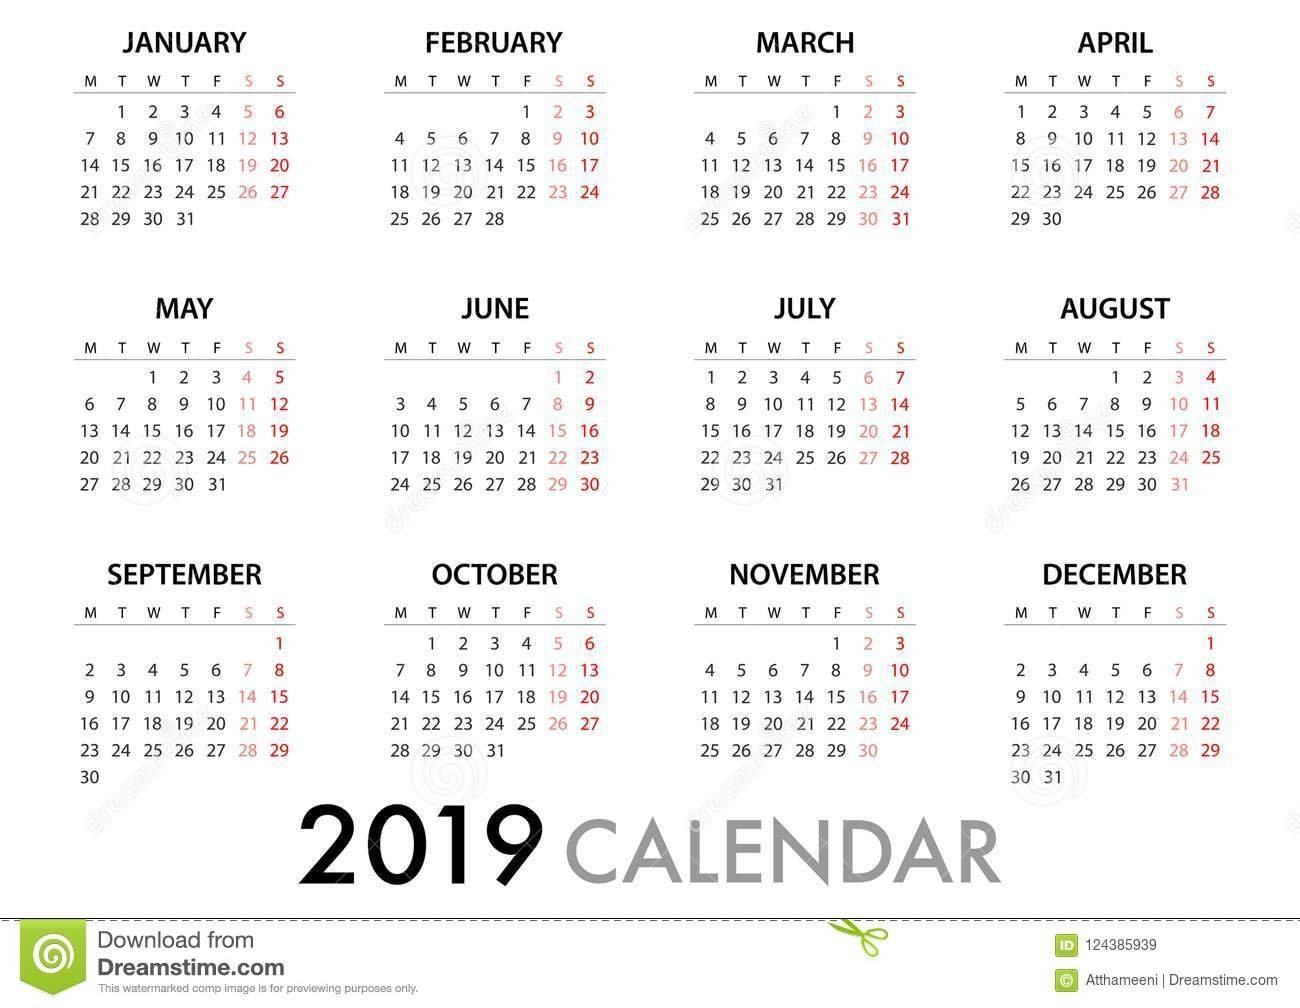 Calendar For 2019 Week Starts Monday. Simple Vector Template Stock Calendar 2019 By Week